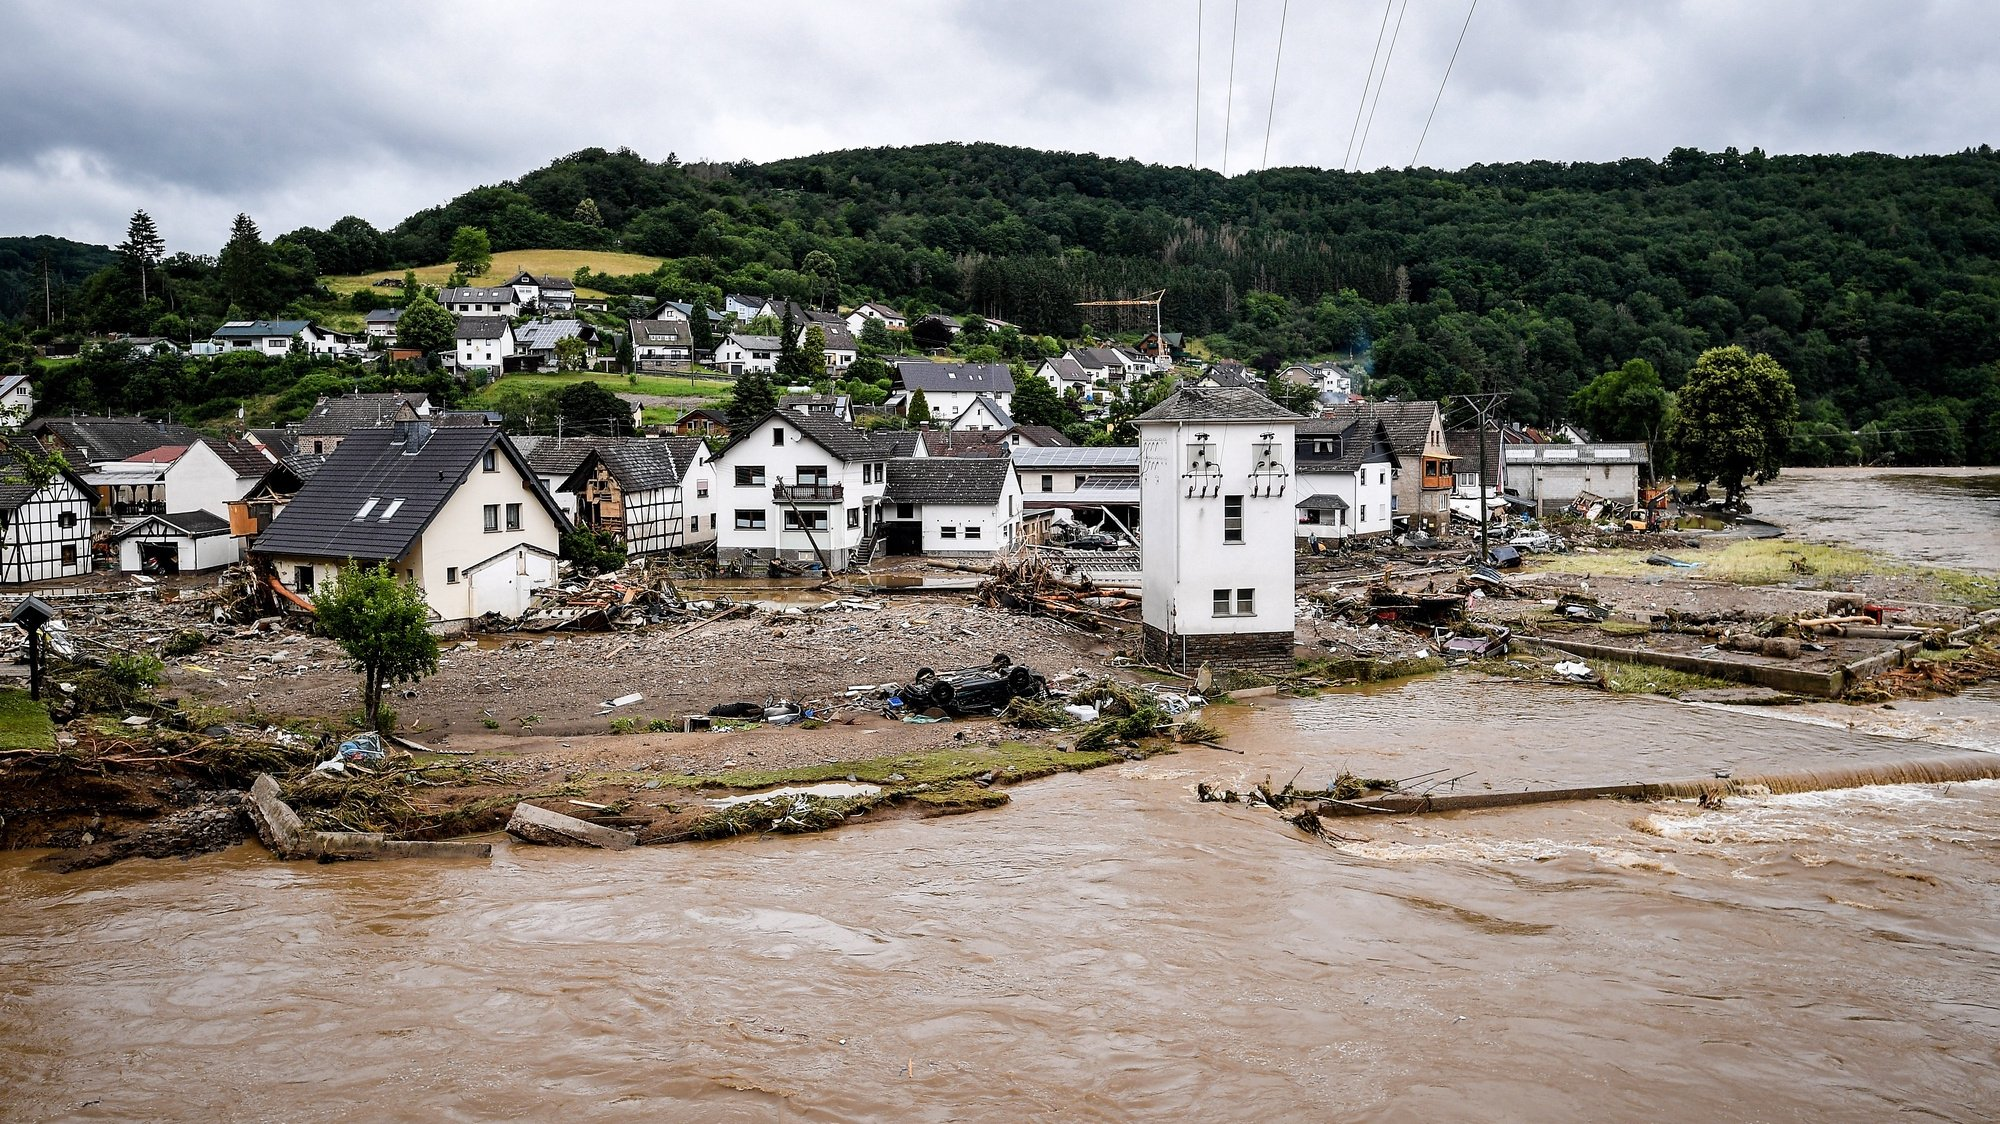 epa09345975 The village of Schuld in the district of Ahrweiler is destroyed after heavy flooding of the river Ahr, in Schuld, Germany, 15 July 2021. Large parts of Western Germany were hit by heavy, continuous rain in the night to Wednesday, resulting in local flash floods that destroyed buildings and swept away cars.  EPA/SASCHA STEINBACH